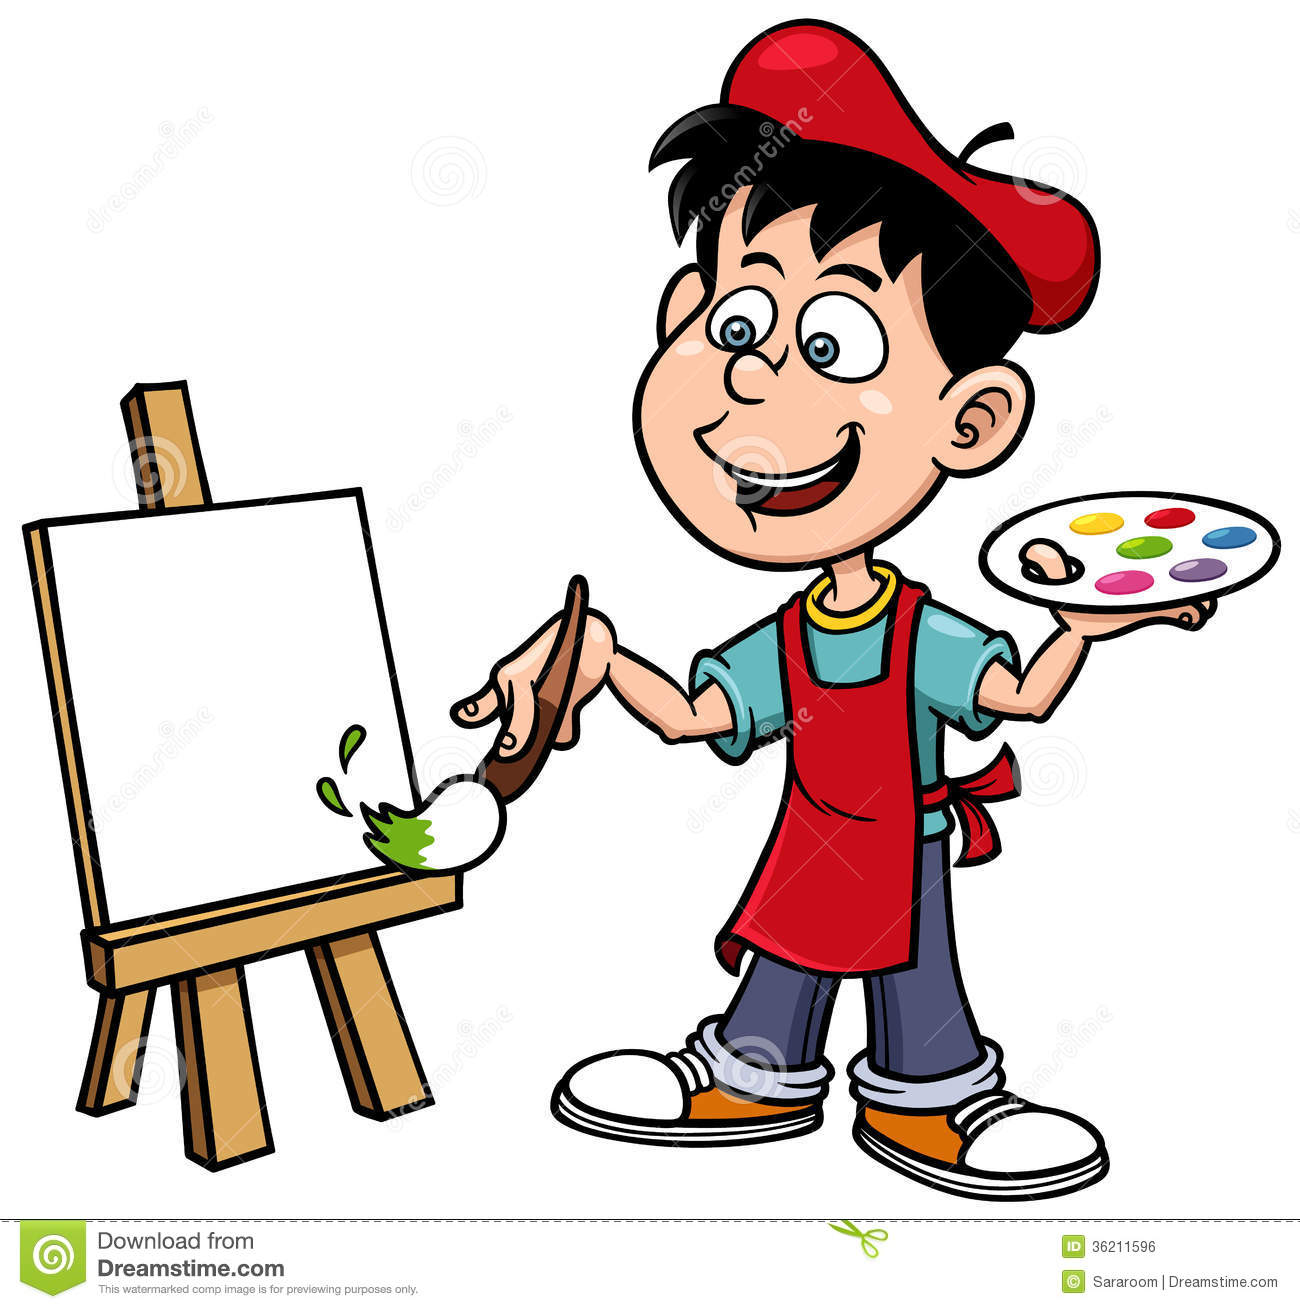 Cartoon Artist Boy Royalty Free Stock Image - Image: 36211596